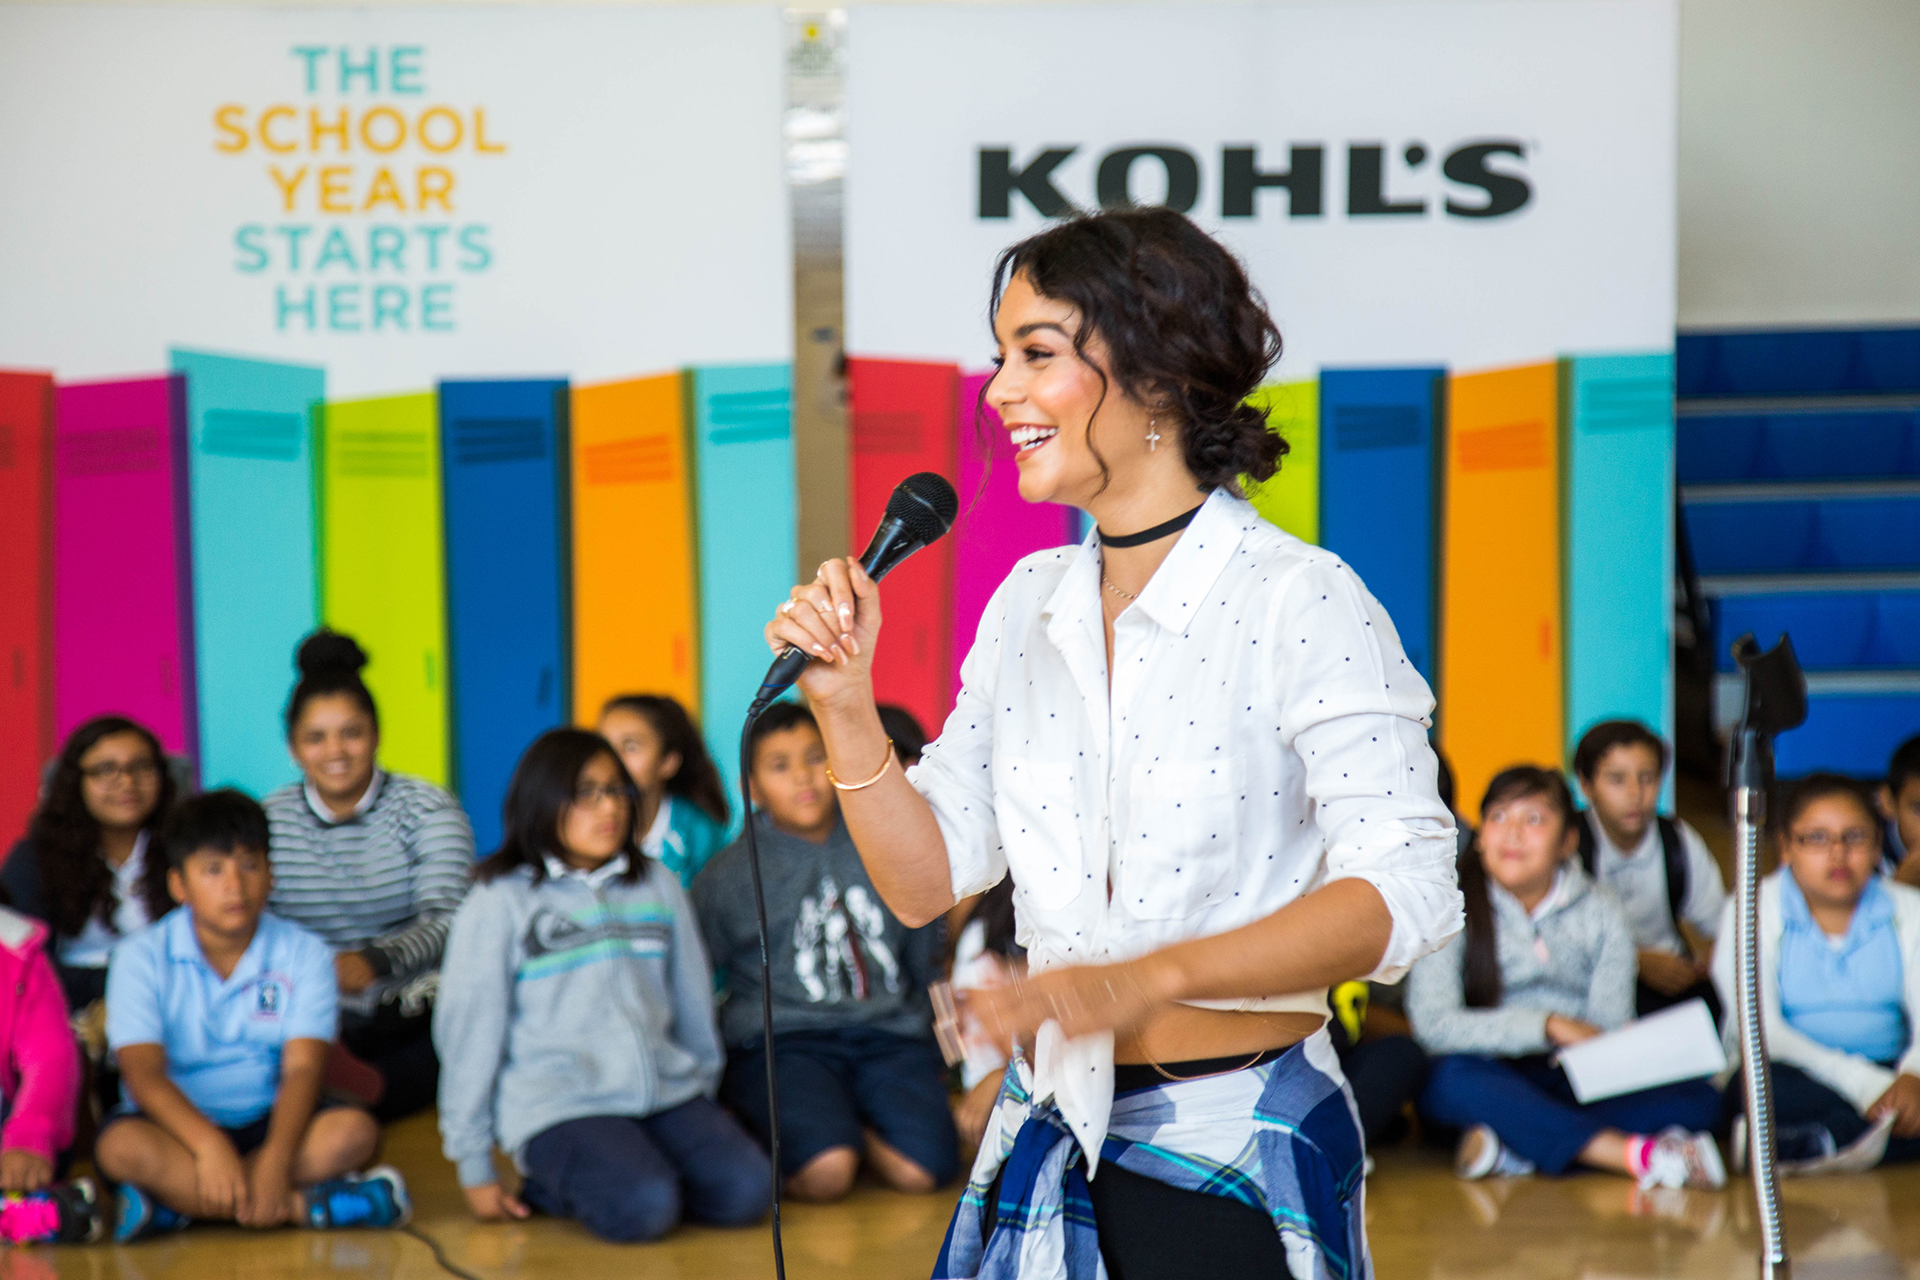 Actress and singer Vanessa Hudgens tells students they are getting free Nike sneakers in LA, California on August 17, 2016